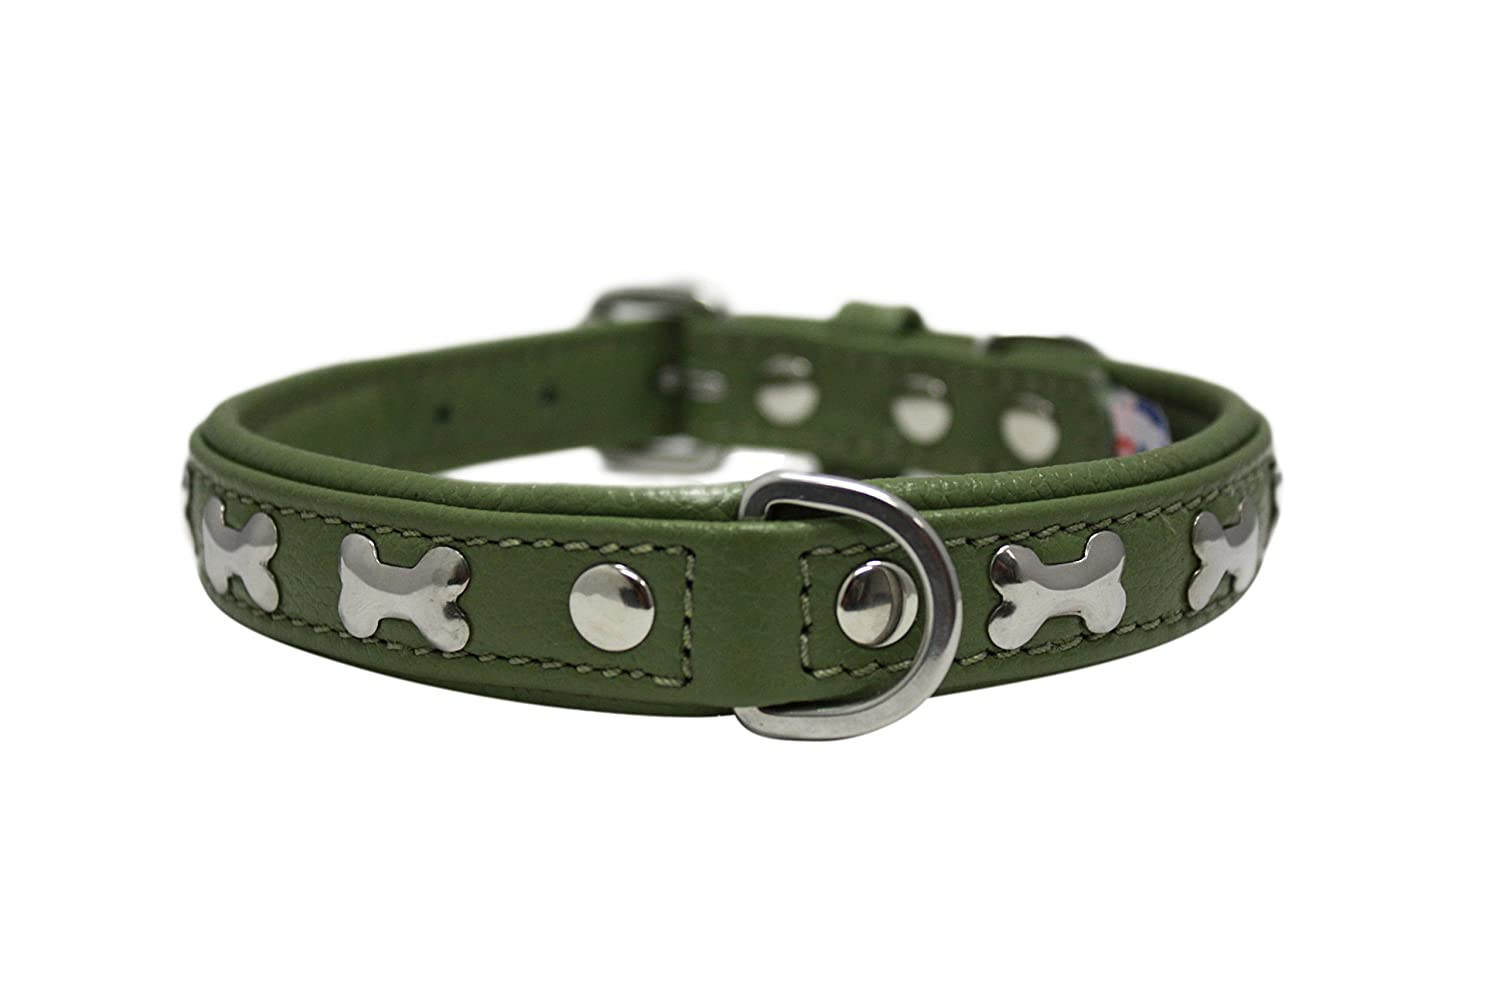 Leather Bones Dog Collar Padded Double-Ply Riveted Settings 14 x 3 4 Green Leather (redterdam Bones) Neck Size  9.5-12